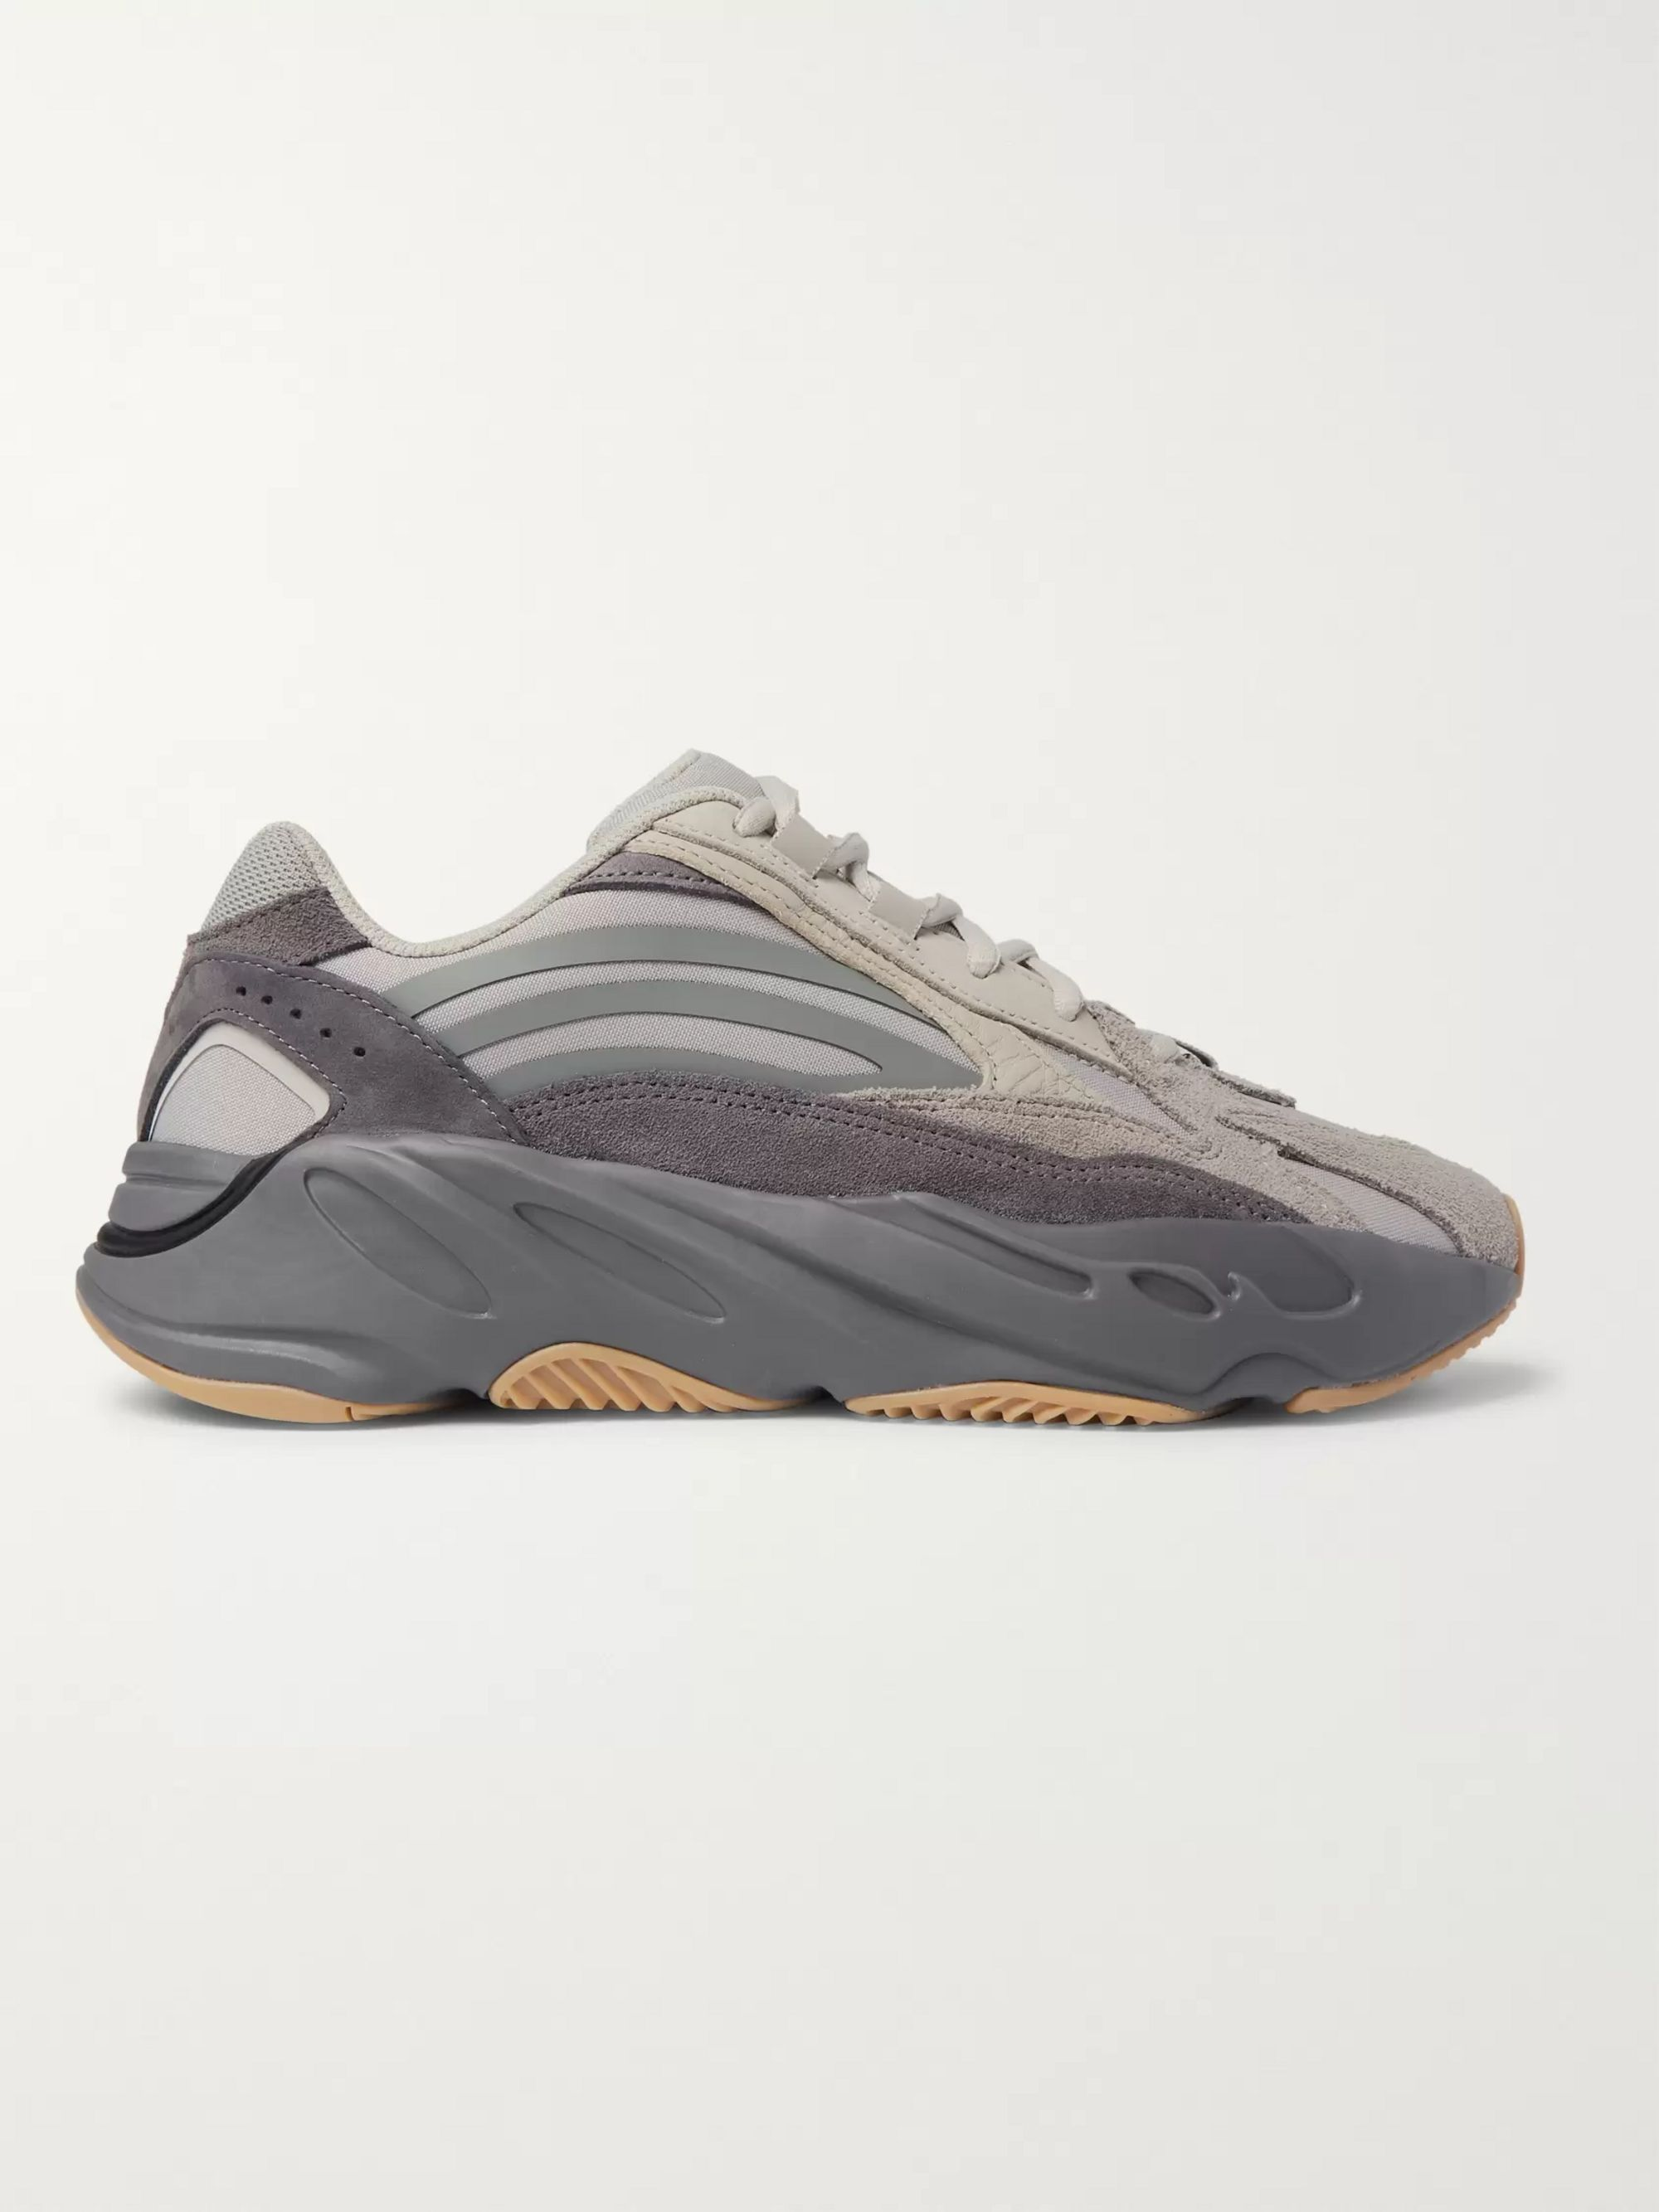 adidas Originals Yeezy Boost 700 V2 Nubuck, Leather and Mesh Sneakers